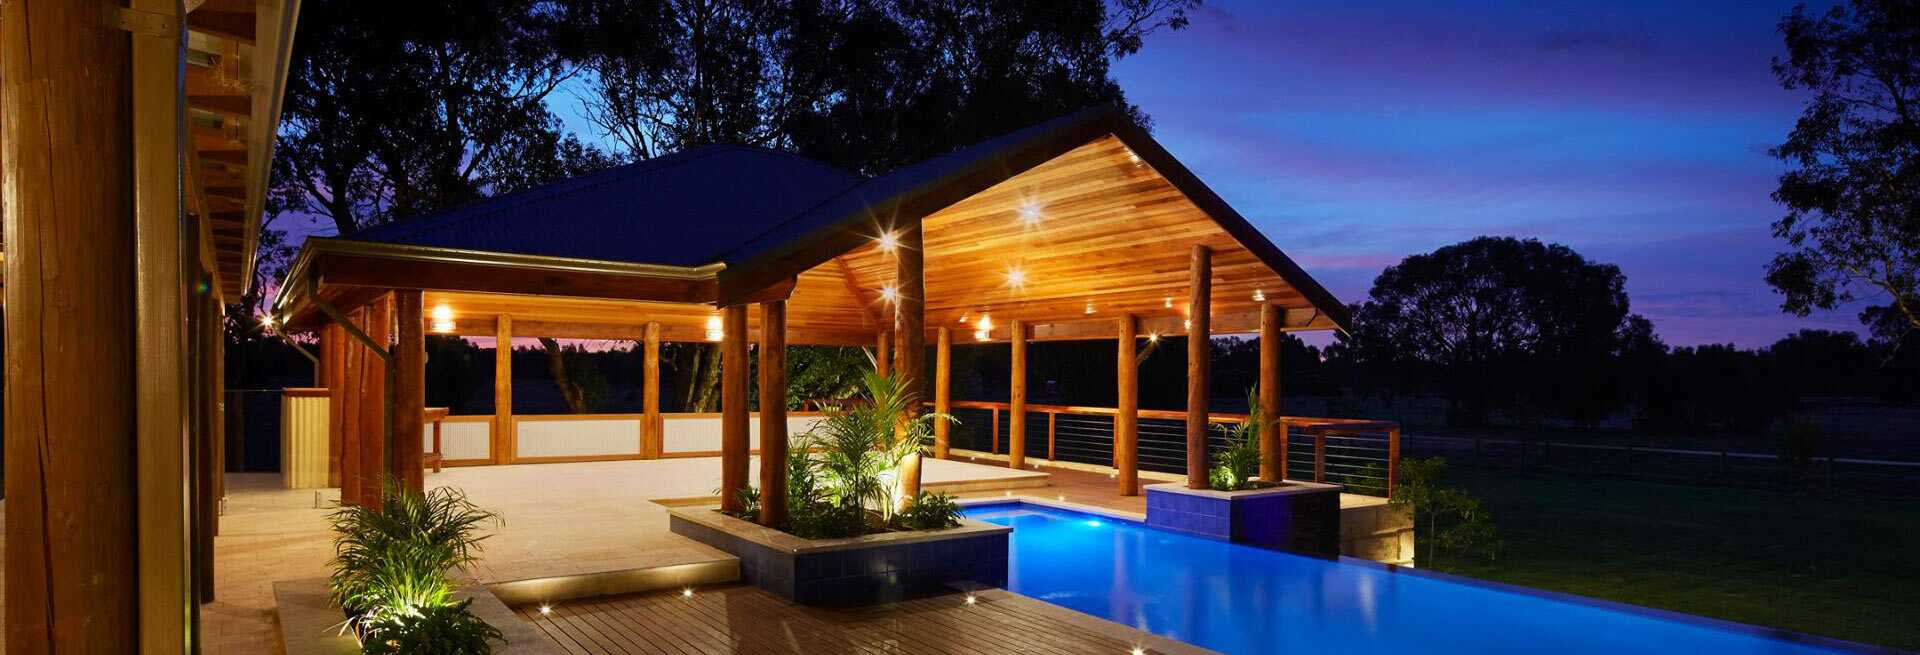 The water 39 s edge pool design and landscaping for Pool hut designs